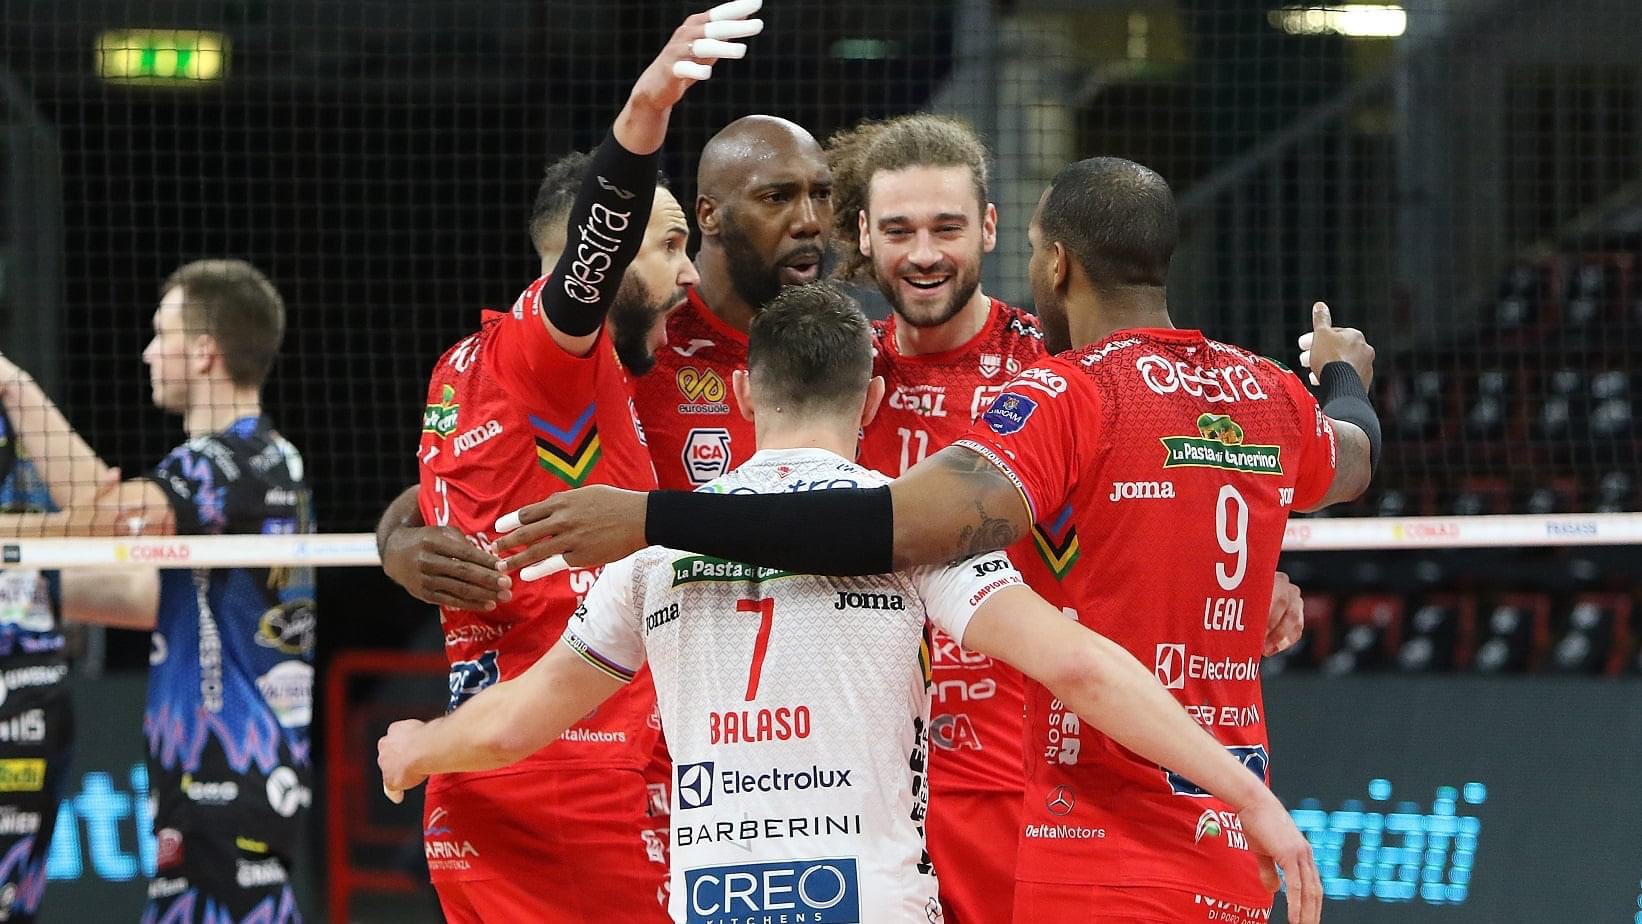 Italy:  There was only one team on court in Final Game 3 – Lube destroy Perugia